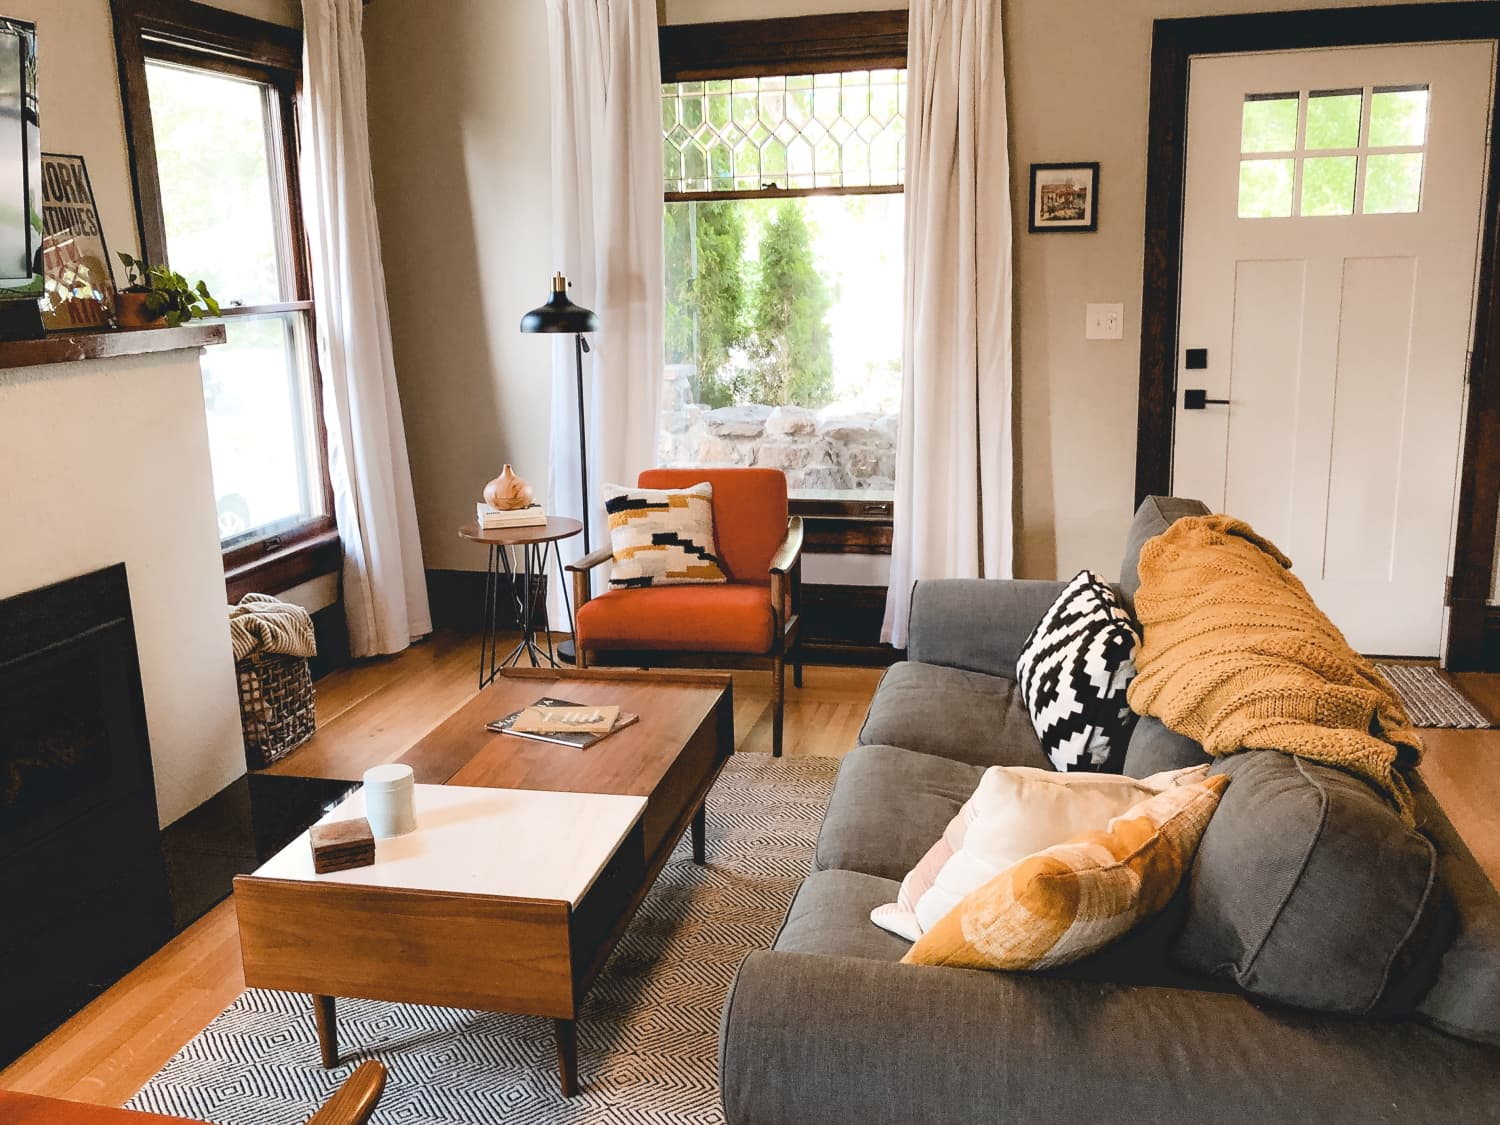 This Craftsman Bungalow's Natural Light is Amazing, and the Decor Warm and Cozy